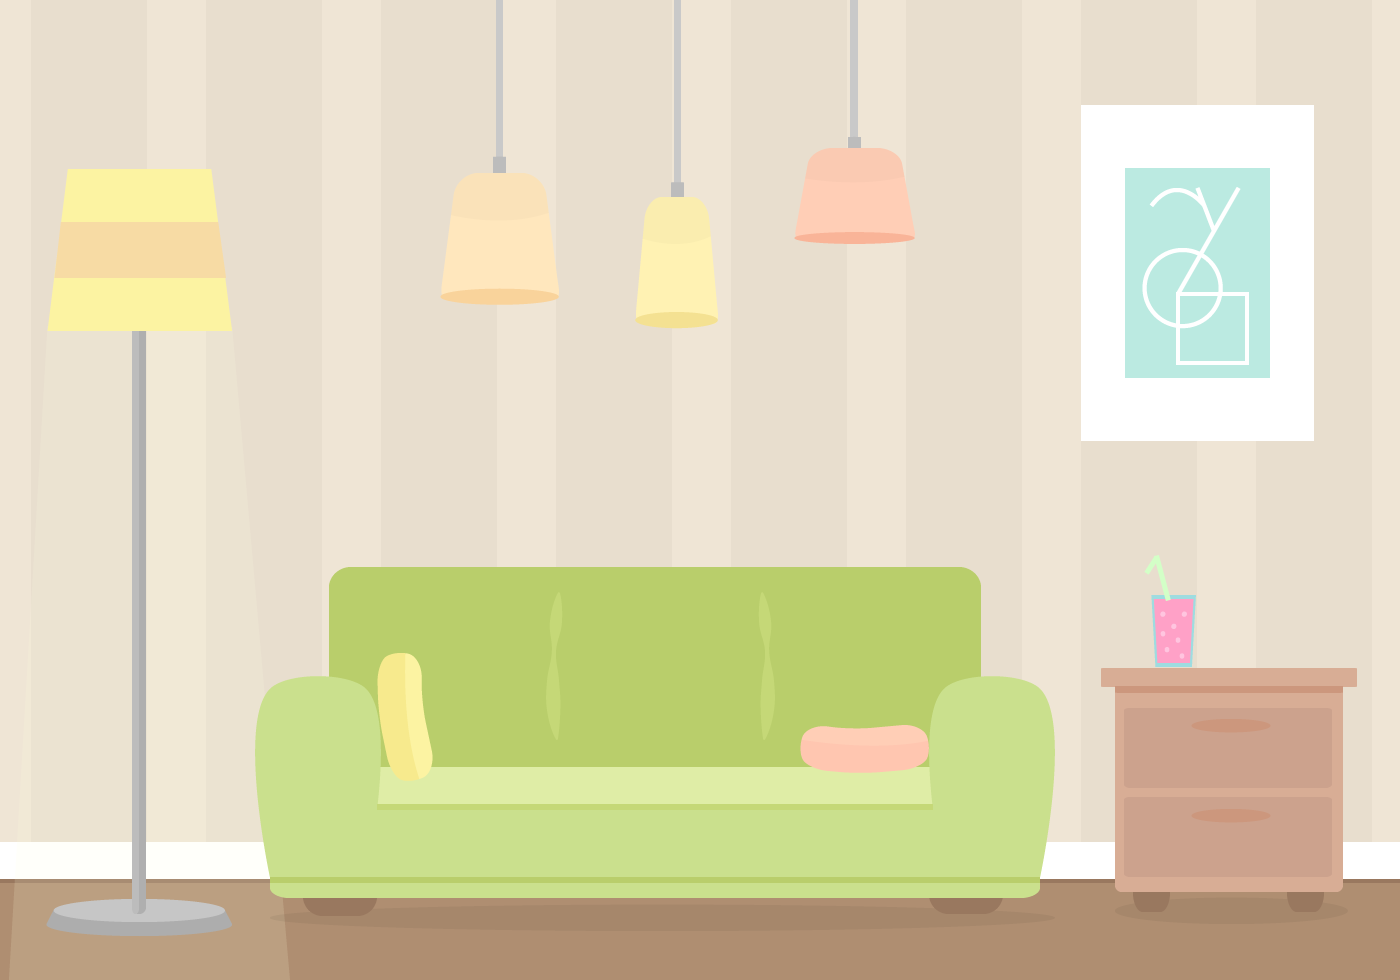 Apartment Bedroom Furniture Free Living Room Vector Download Free Vector Art Stock